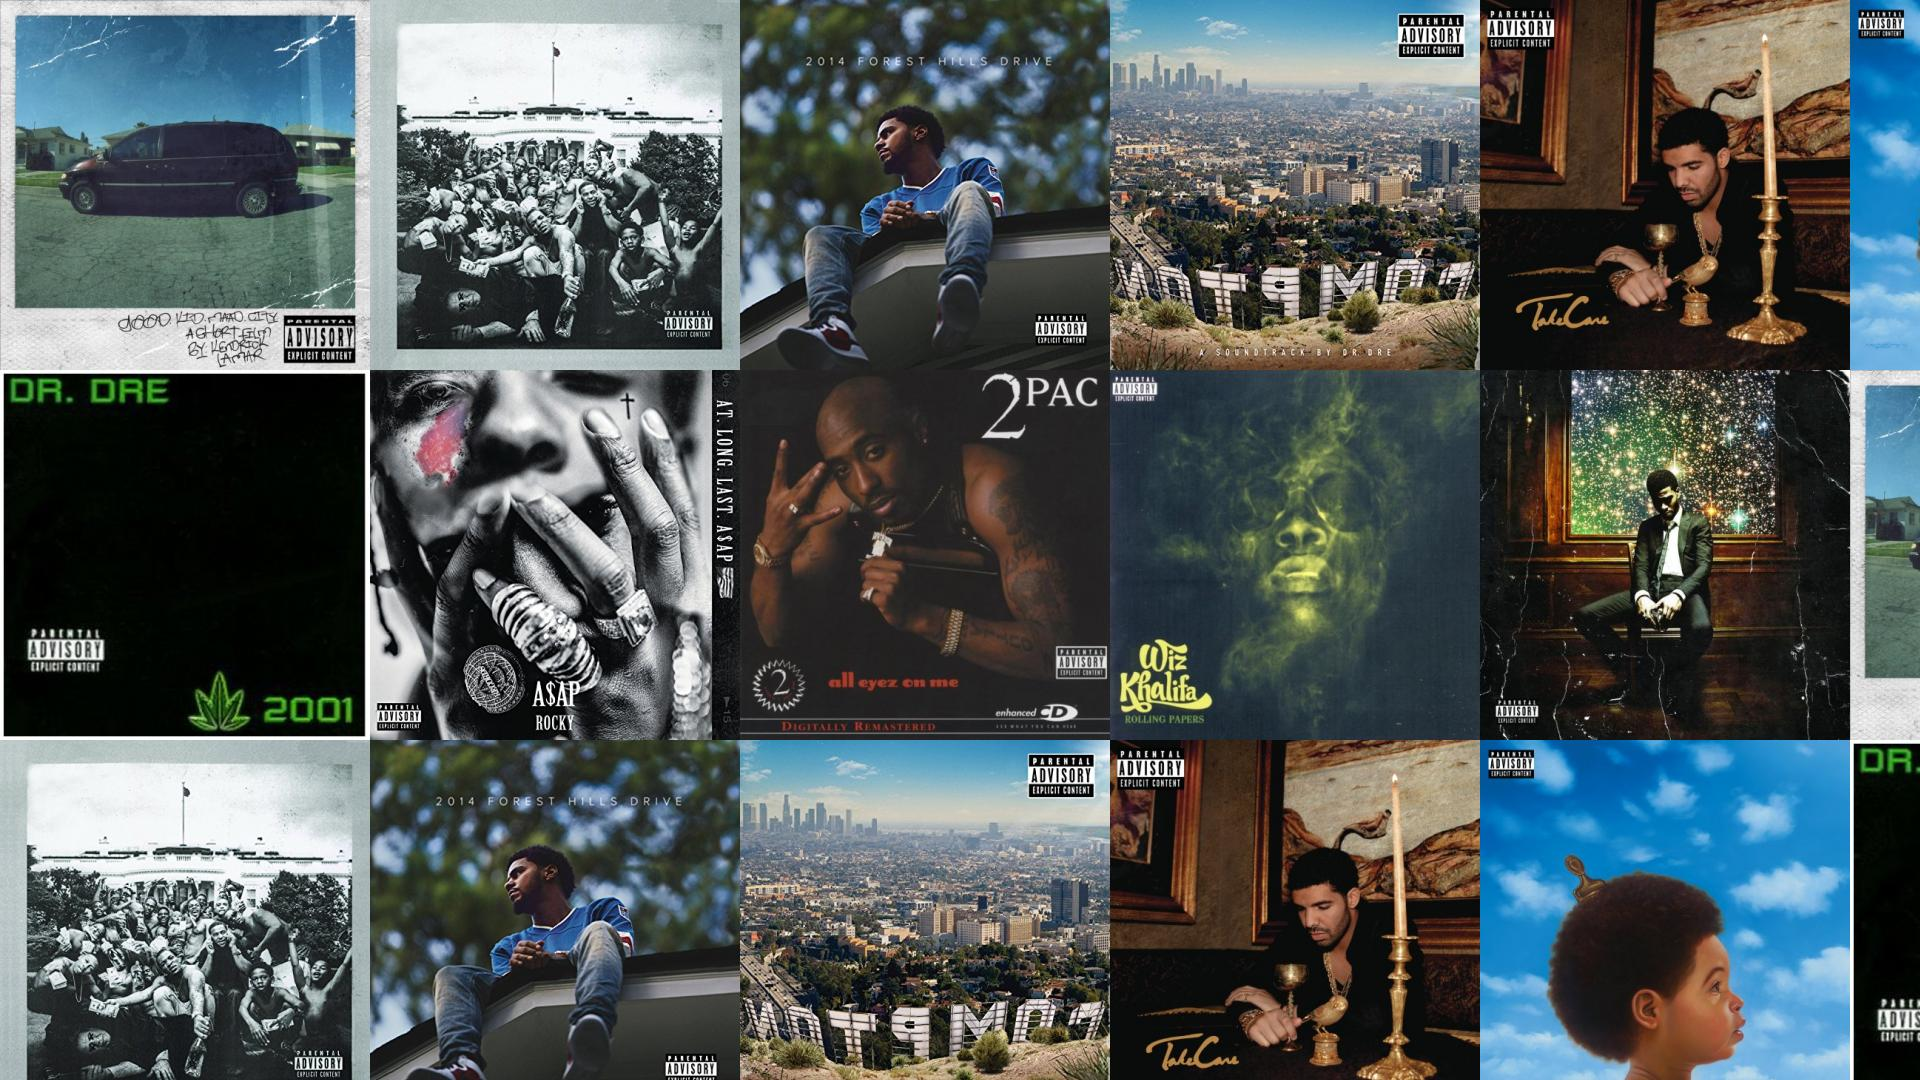 maad city kendrick lamar download